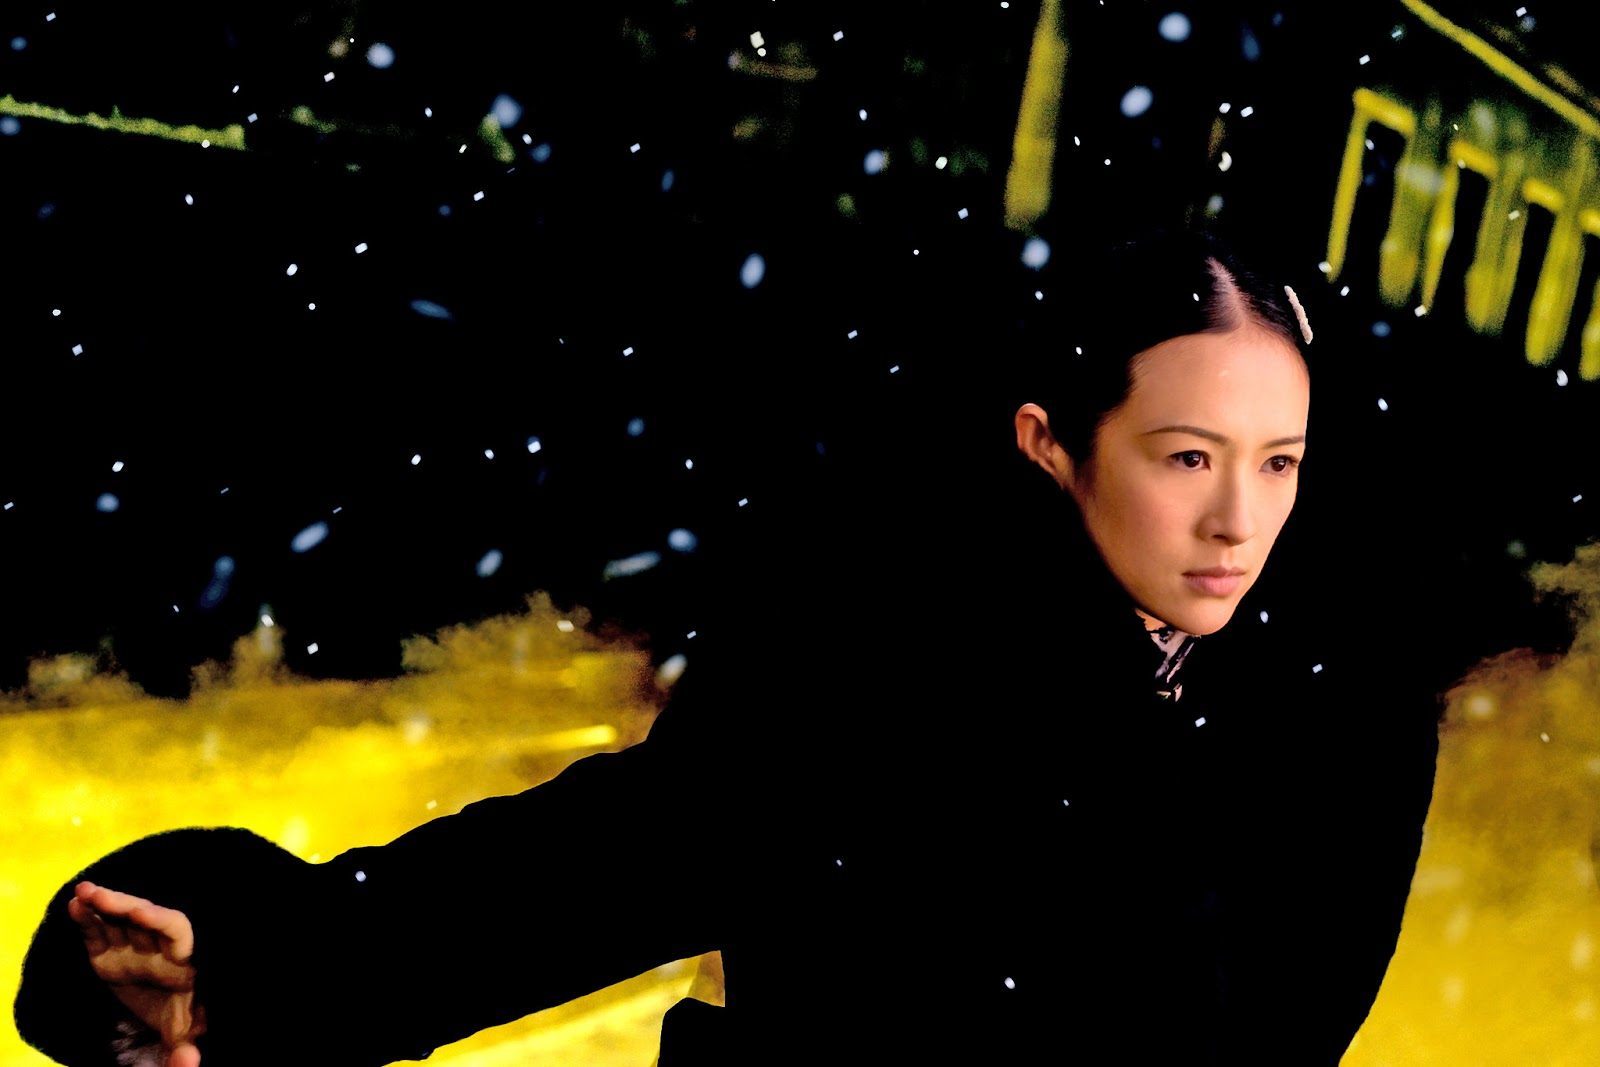 Ziyi Zhang as Gong Er in The Grandmaster